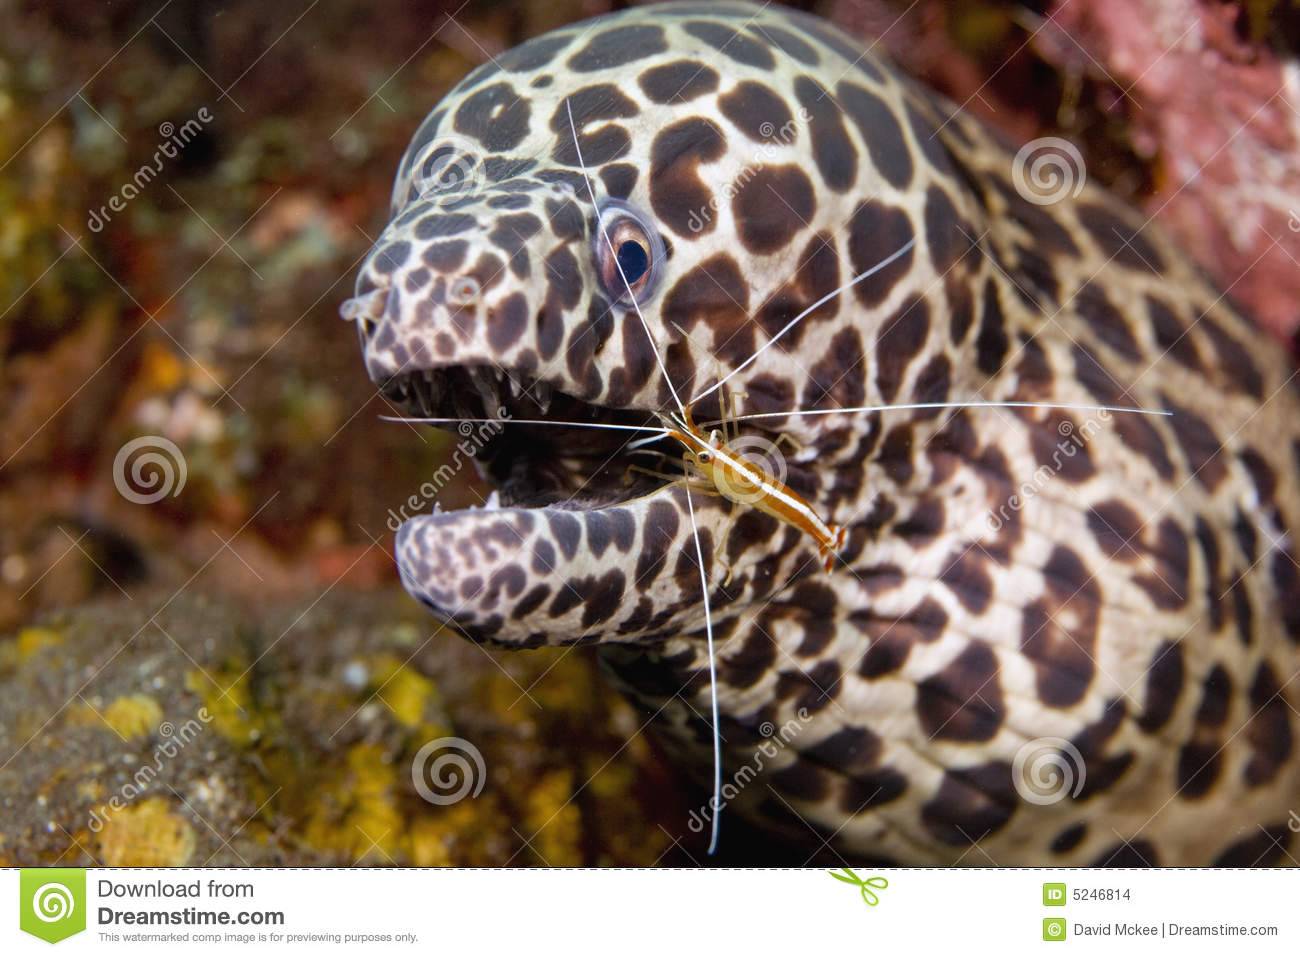 Cleaner Shrimp with Moray Eel